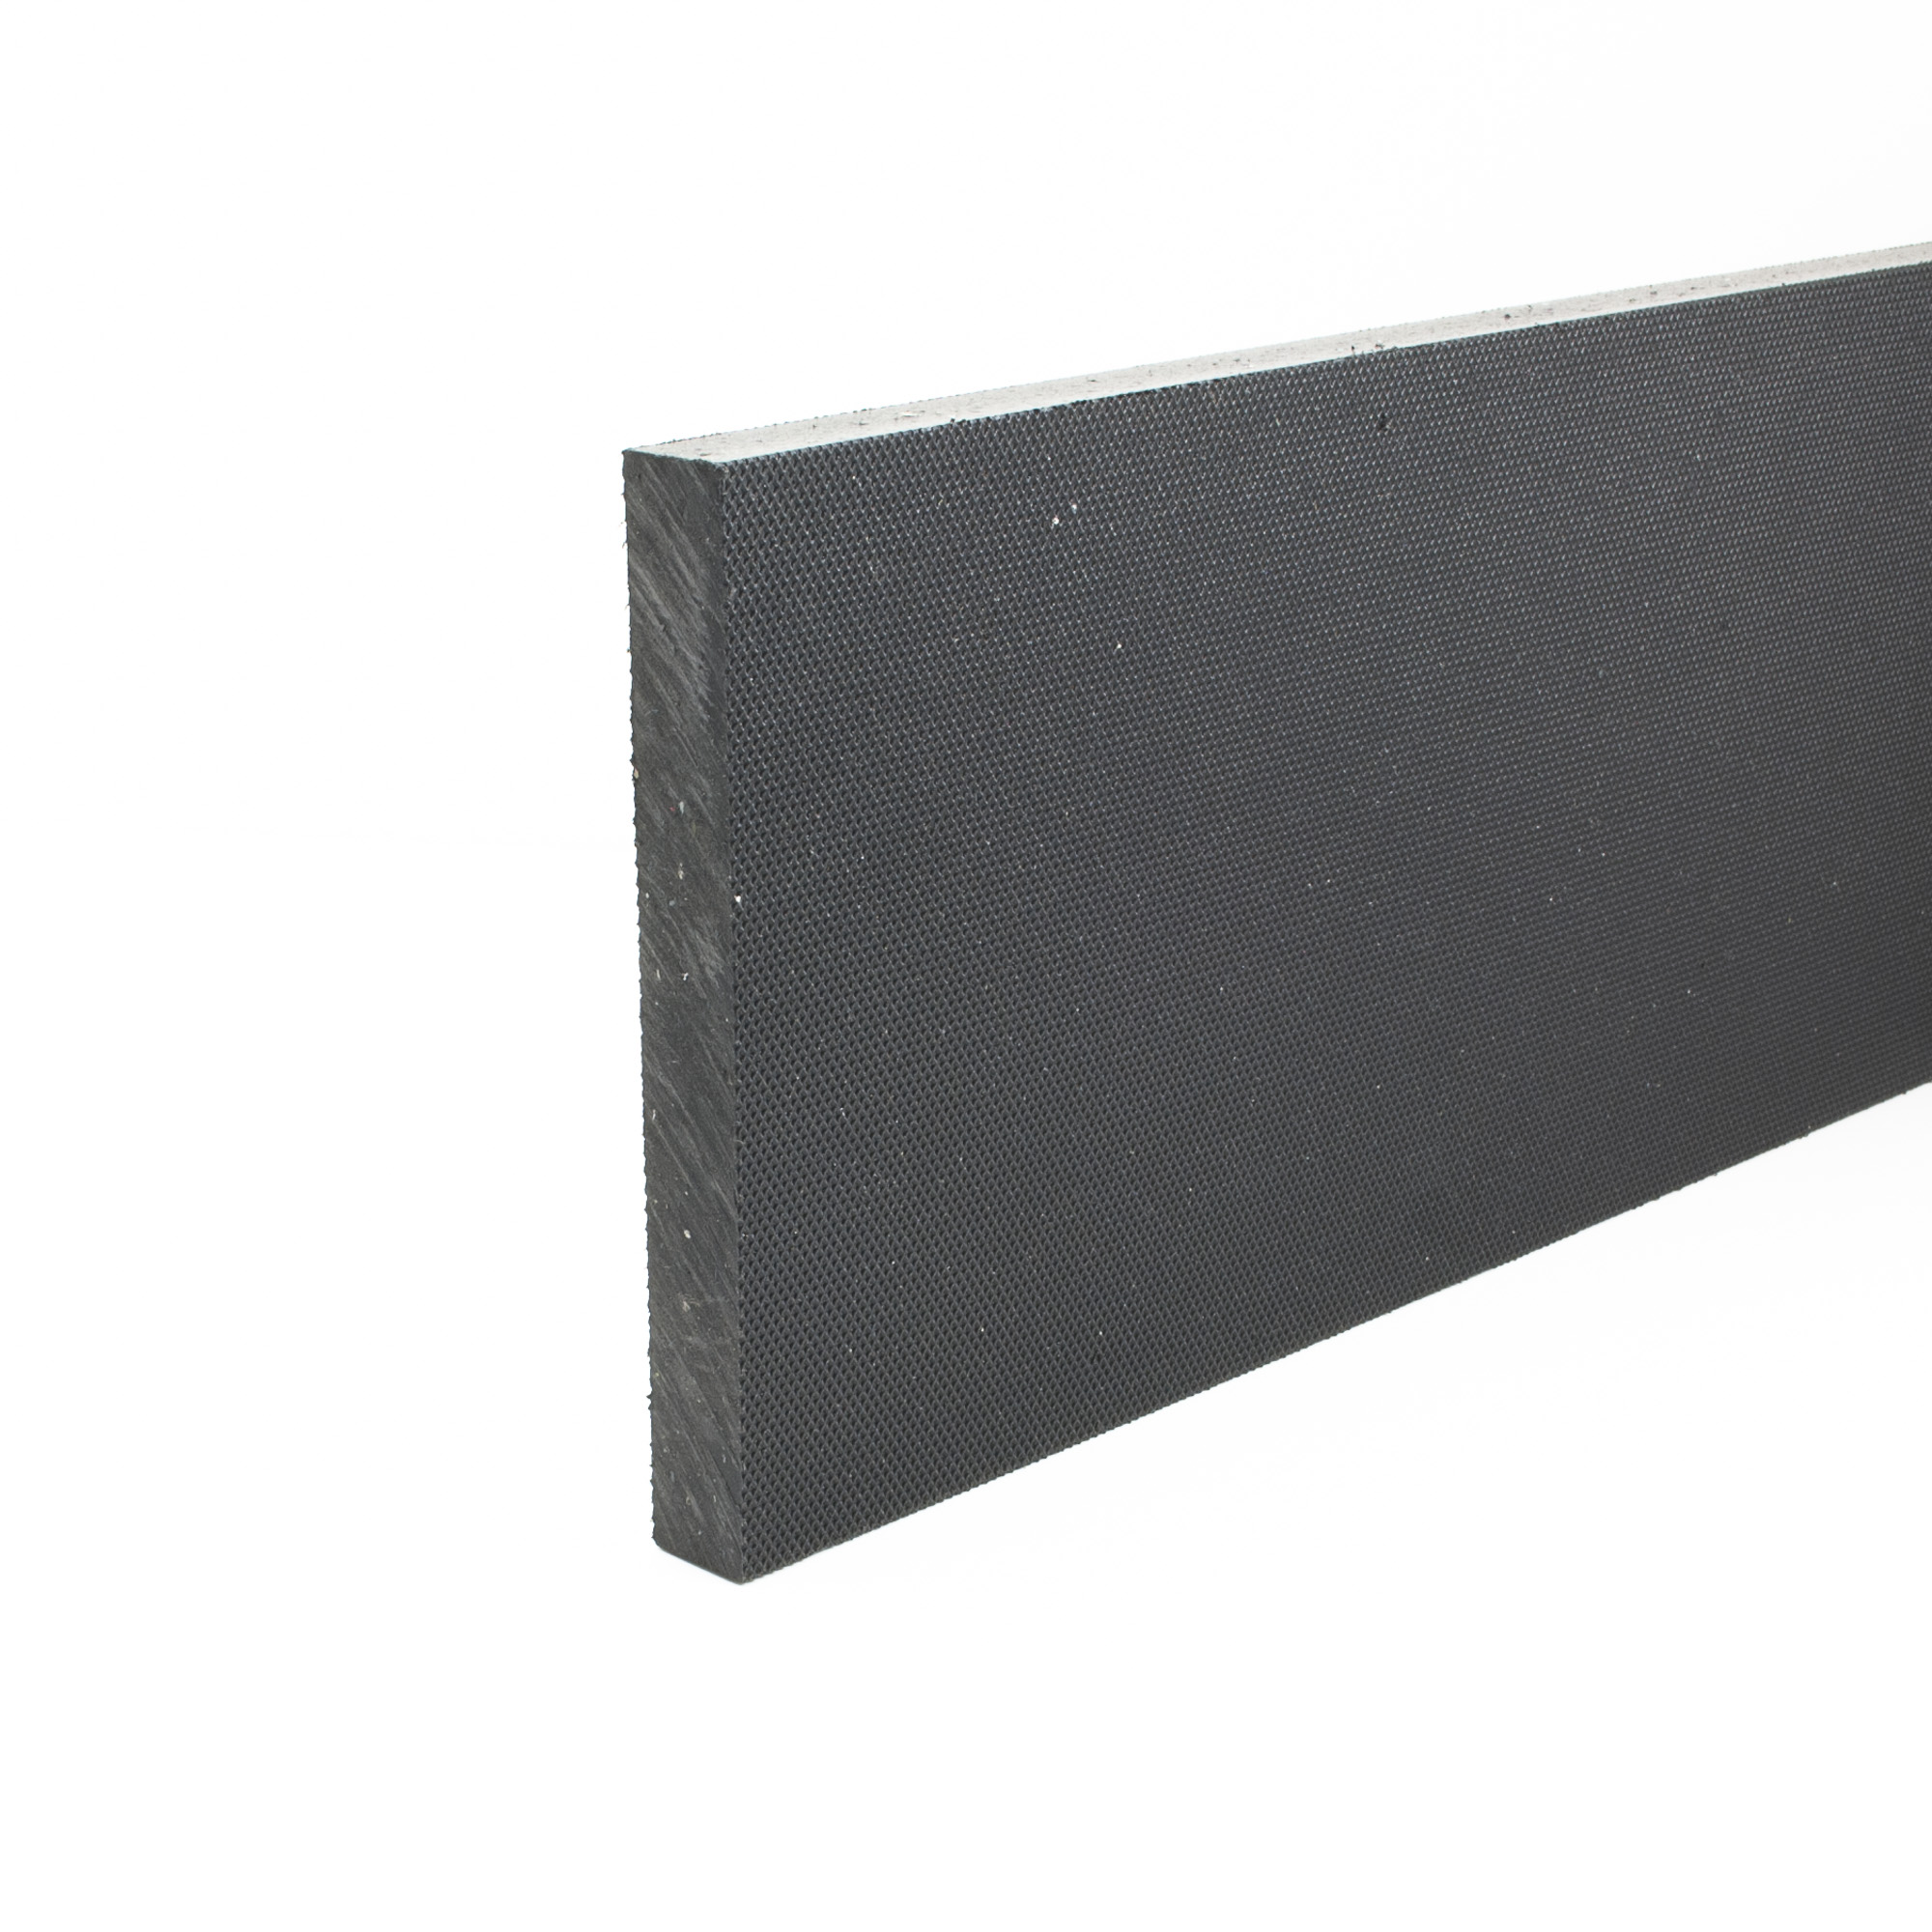 Stokbord Embossed LDPE Black 18mm x 0.6m x 1.22m sheet